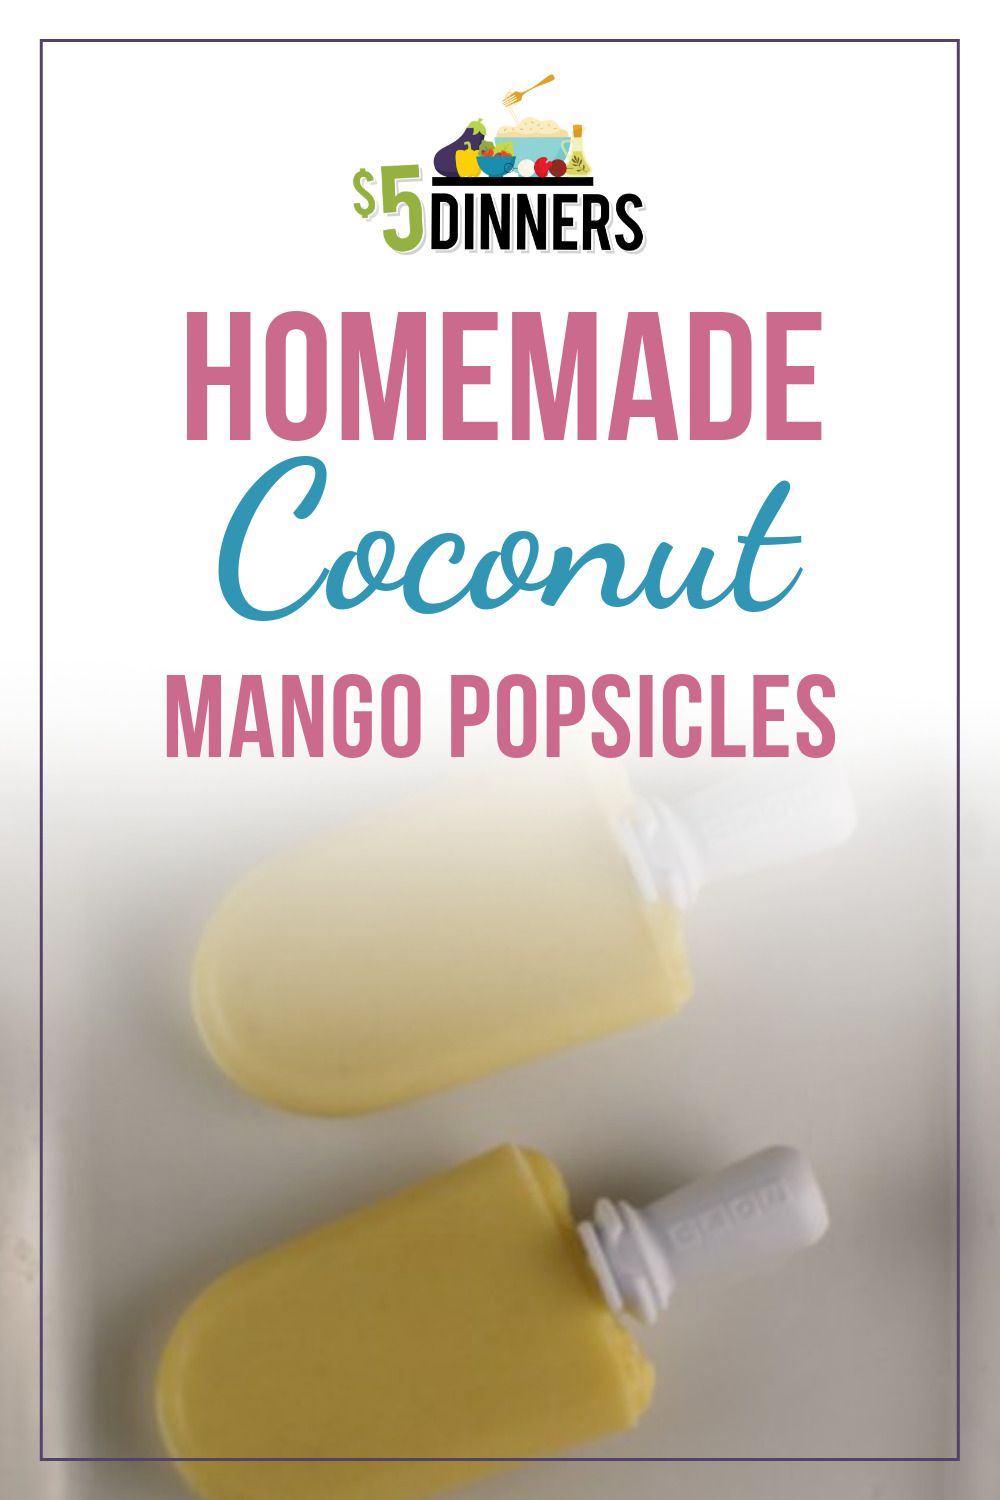 How to Make Homemade Coconut Mango Popsicles (Dairy Free)